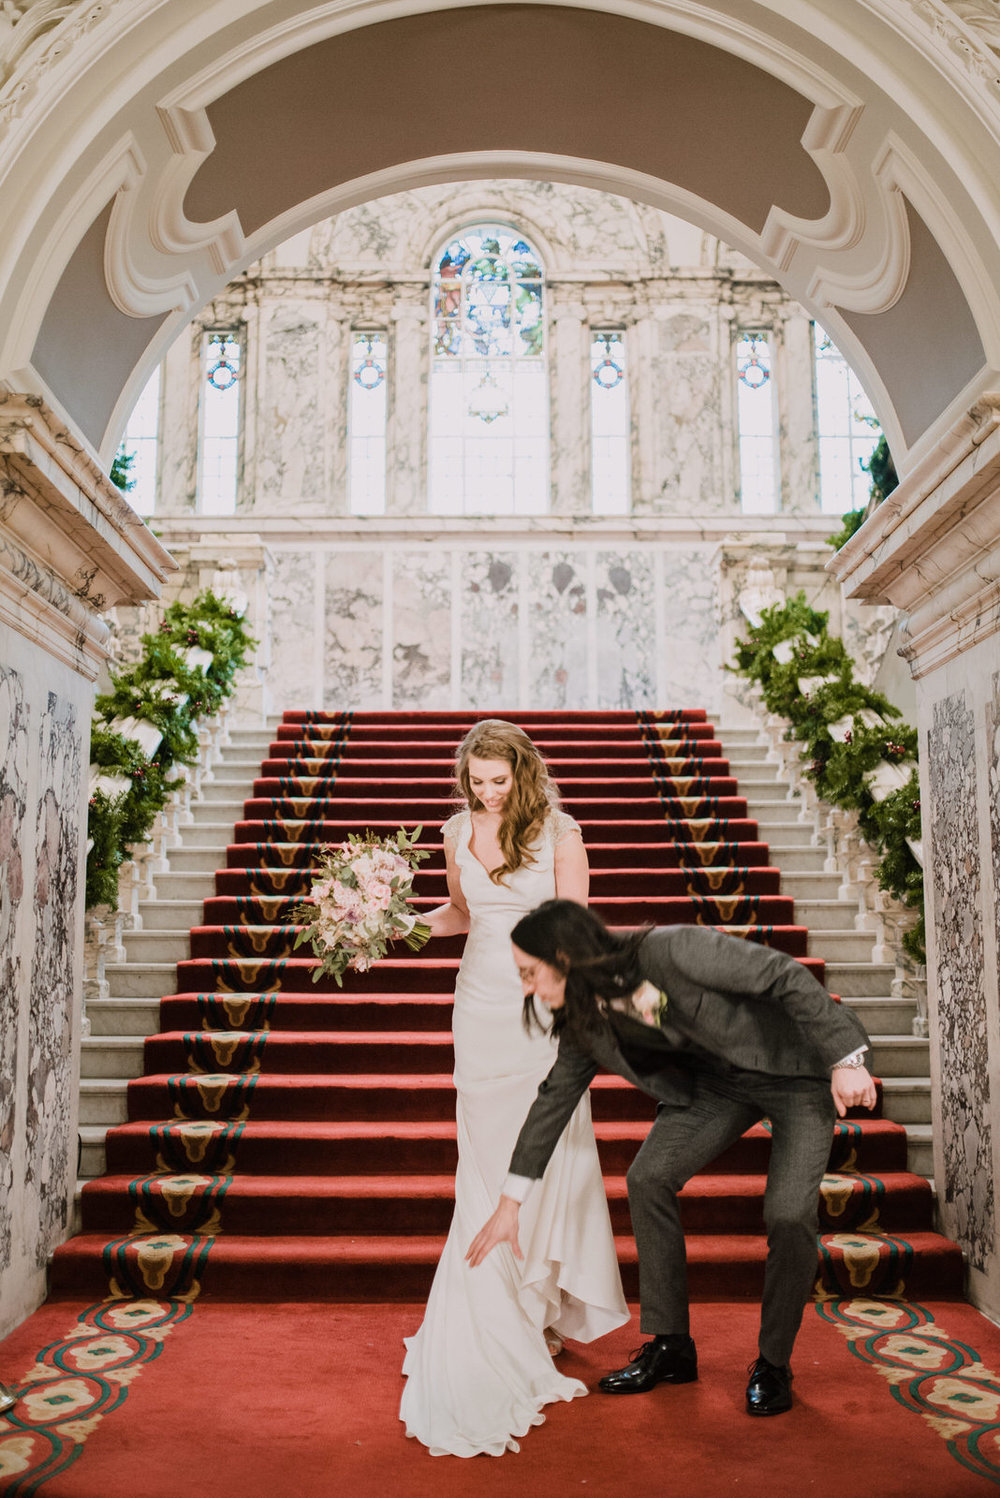 Belfast City Hall Wedding Photographer25.jpg